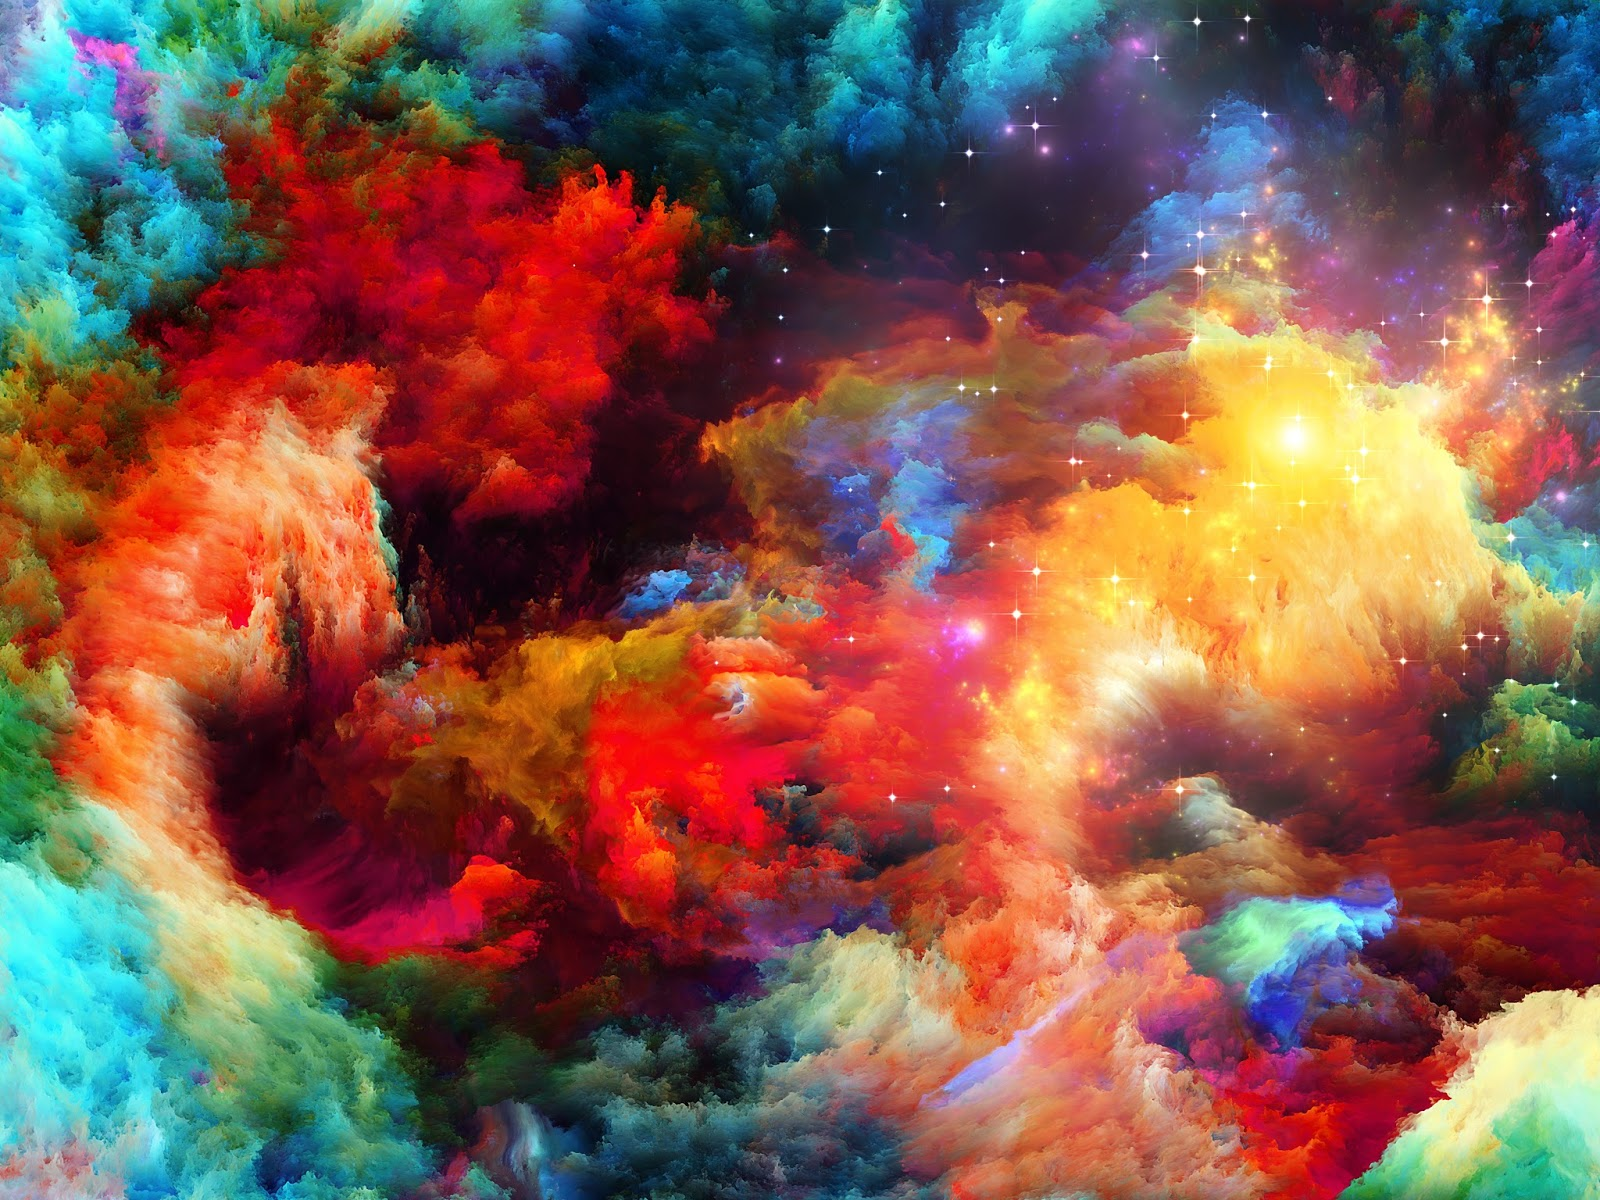 colourful fantasy cloud backgrounds | naveengfx